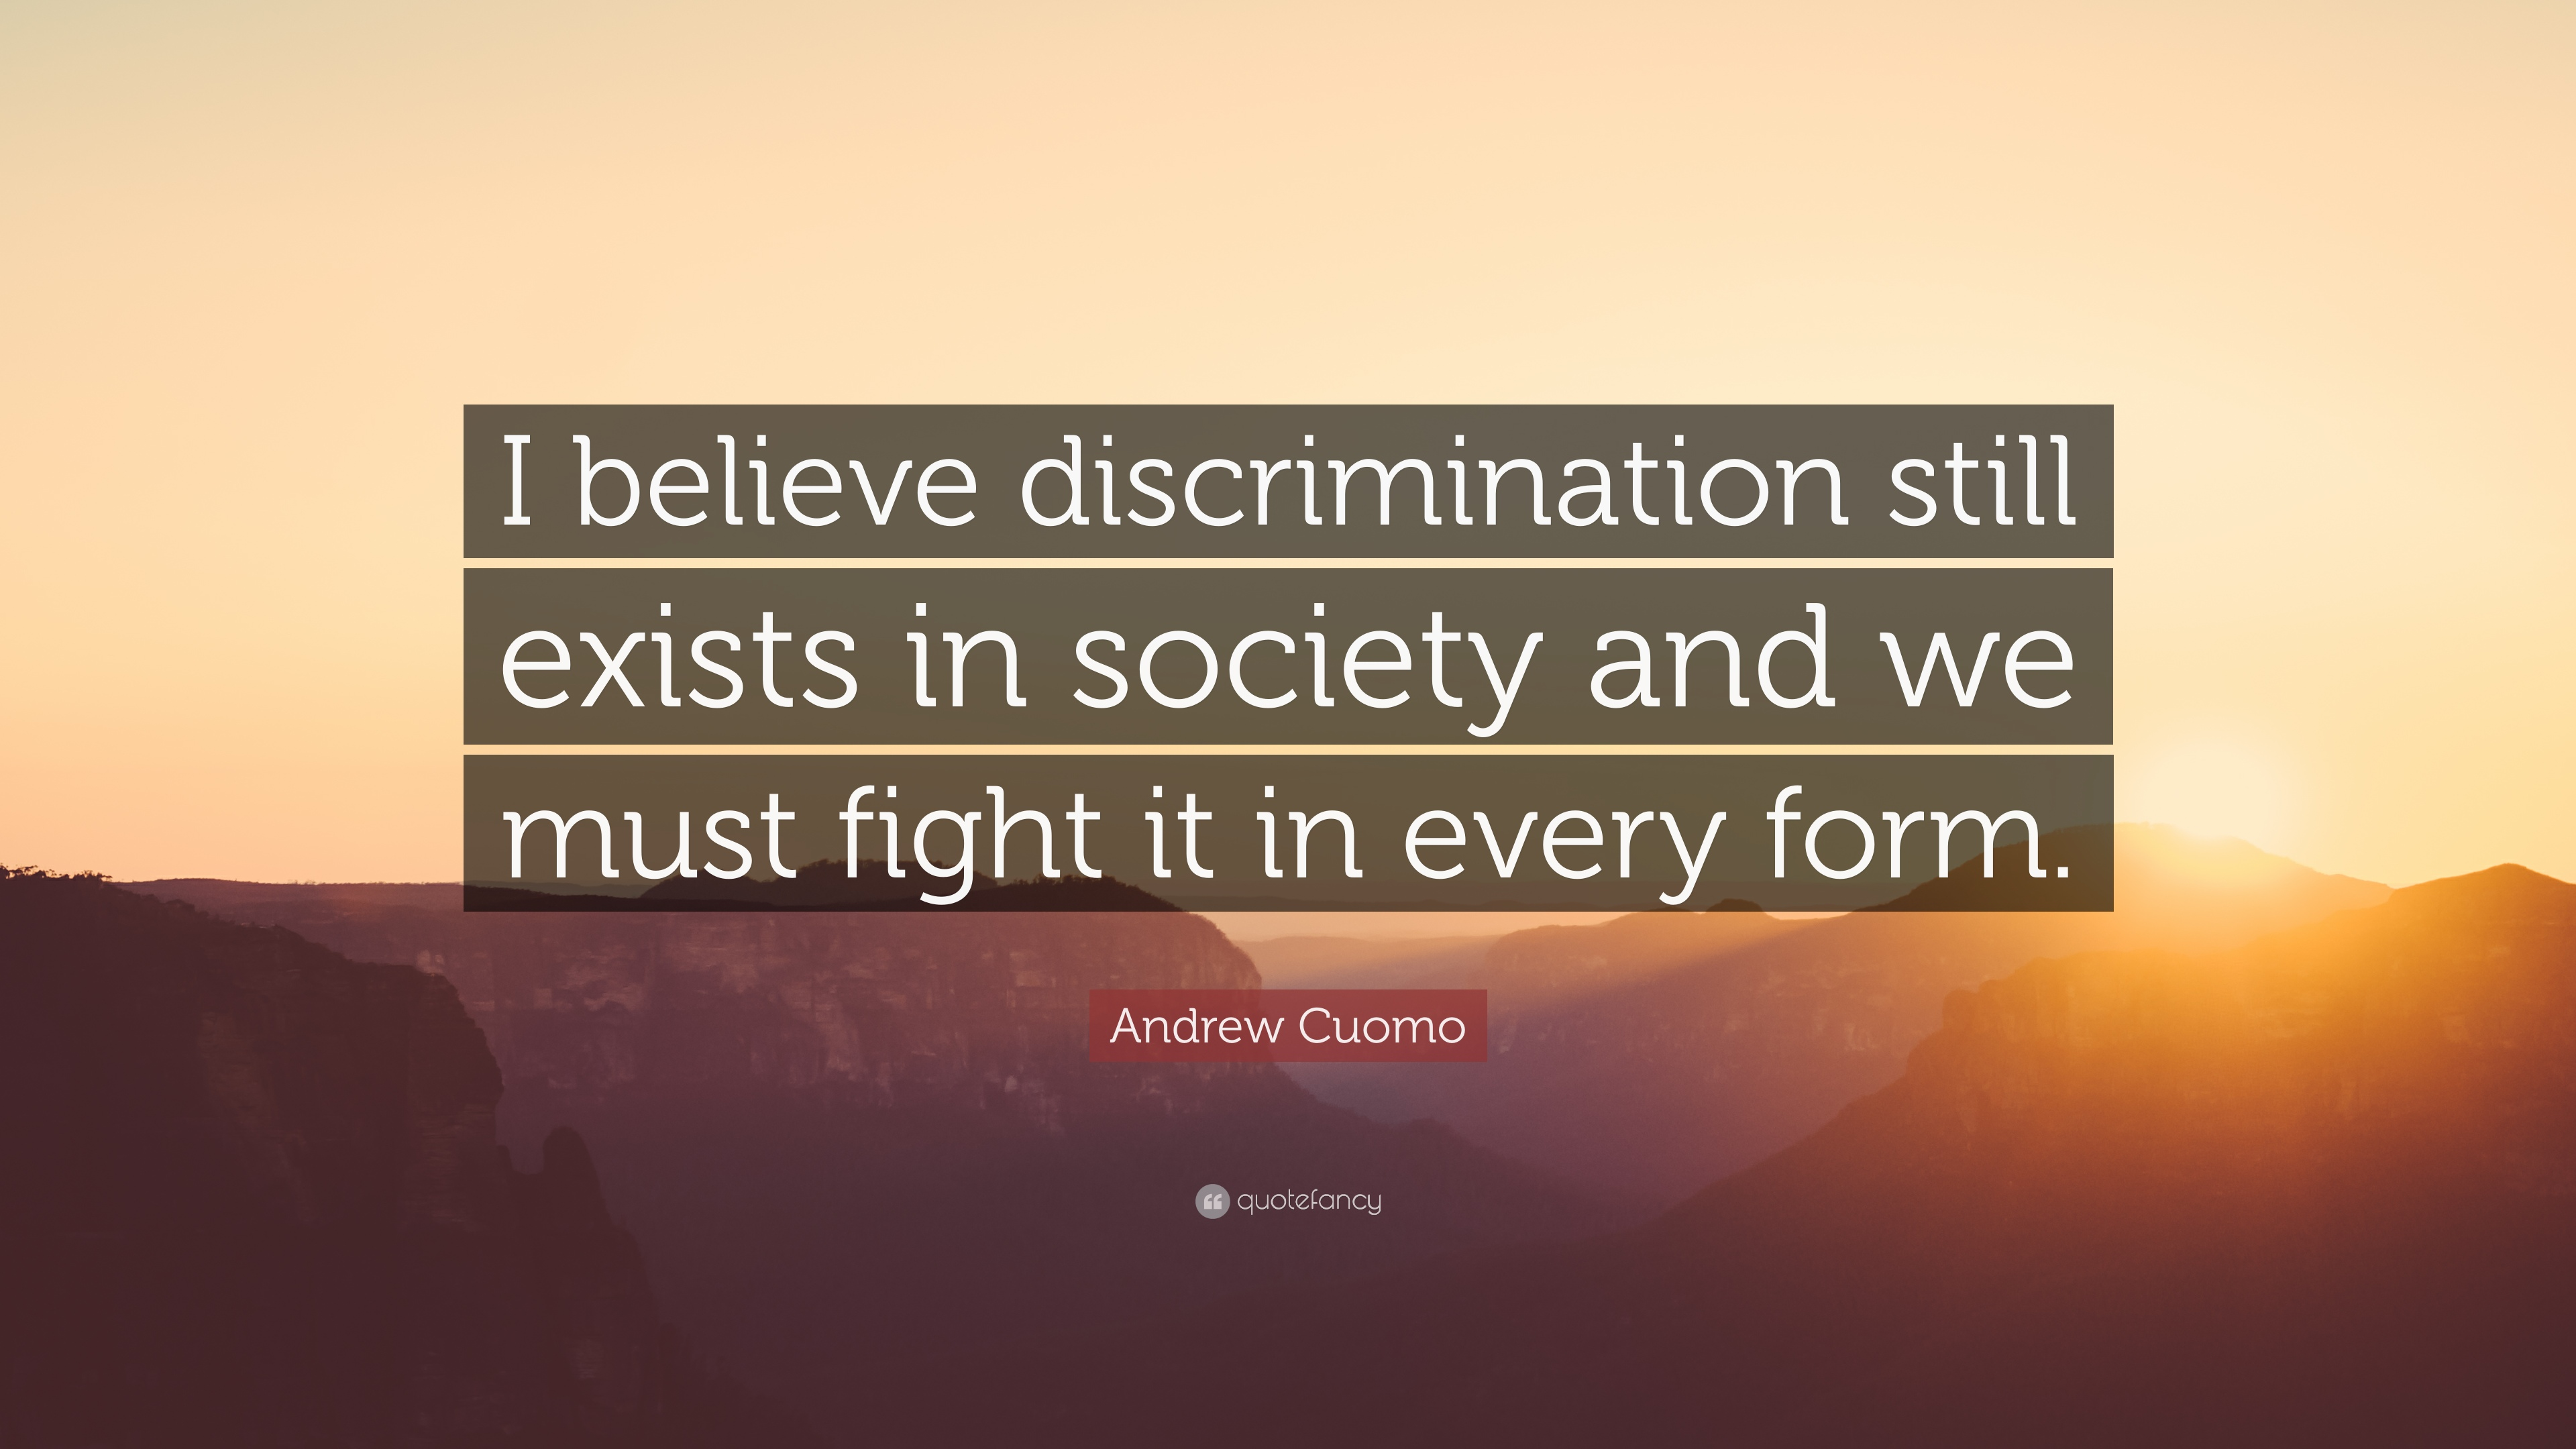 Discrimination Quotes Andrew Cuomo Quotes 62 Wallpapers  Quotefancy